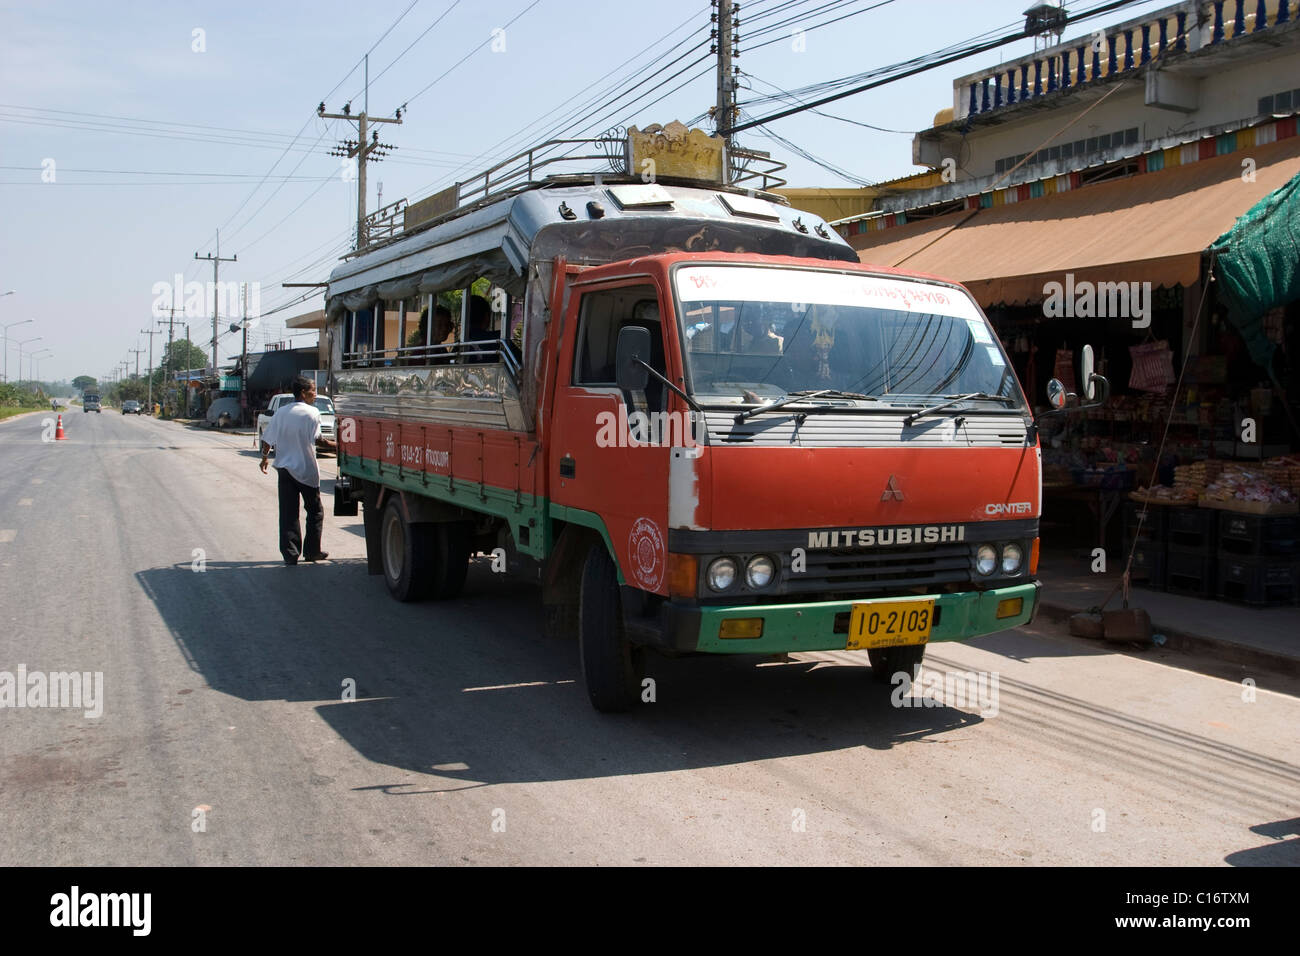 Songthaew - a two row transport in Nakhon Ratchasima. - Stock Image